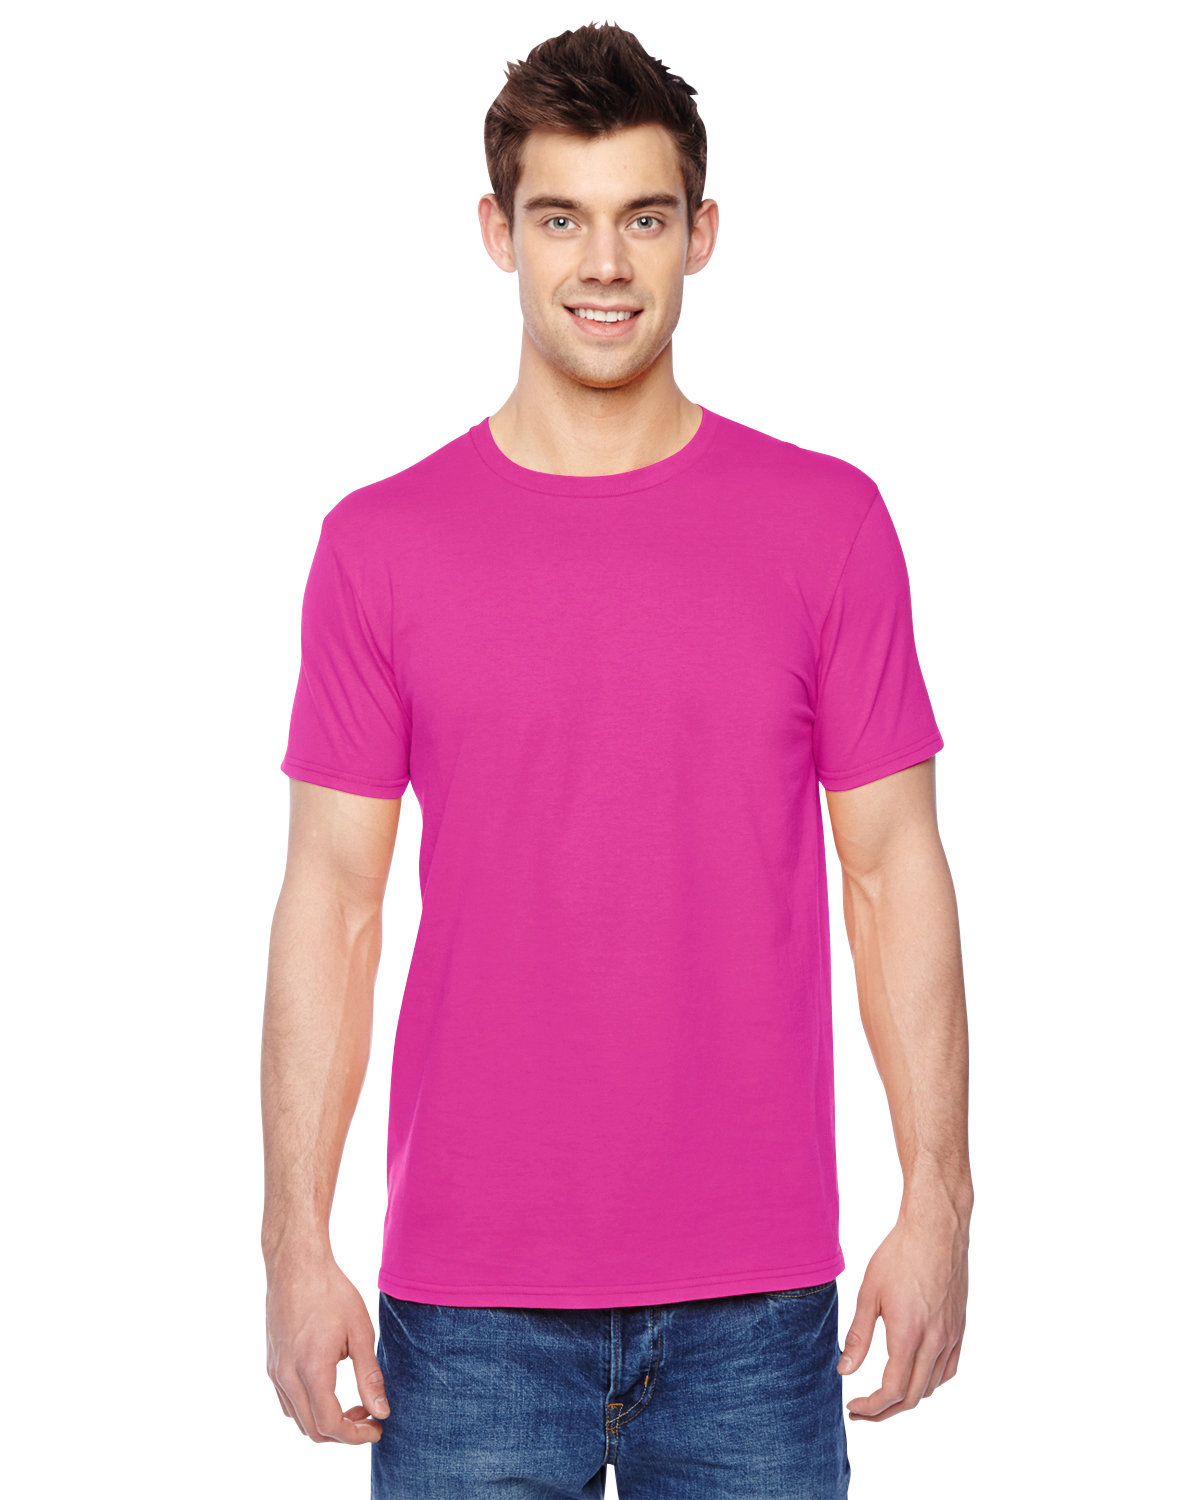 Fruit of the Loom Adult Sofspun® Jersey Crew T-Shirt CYBER PINK